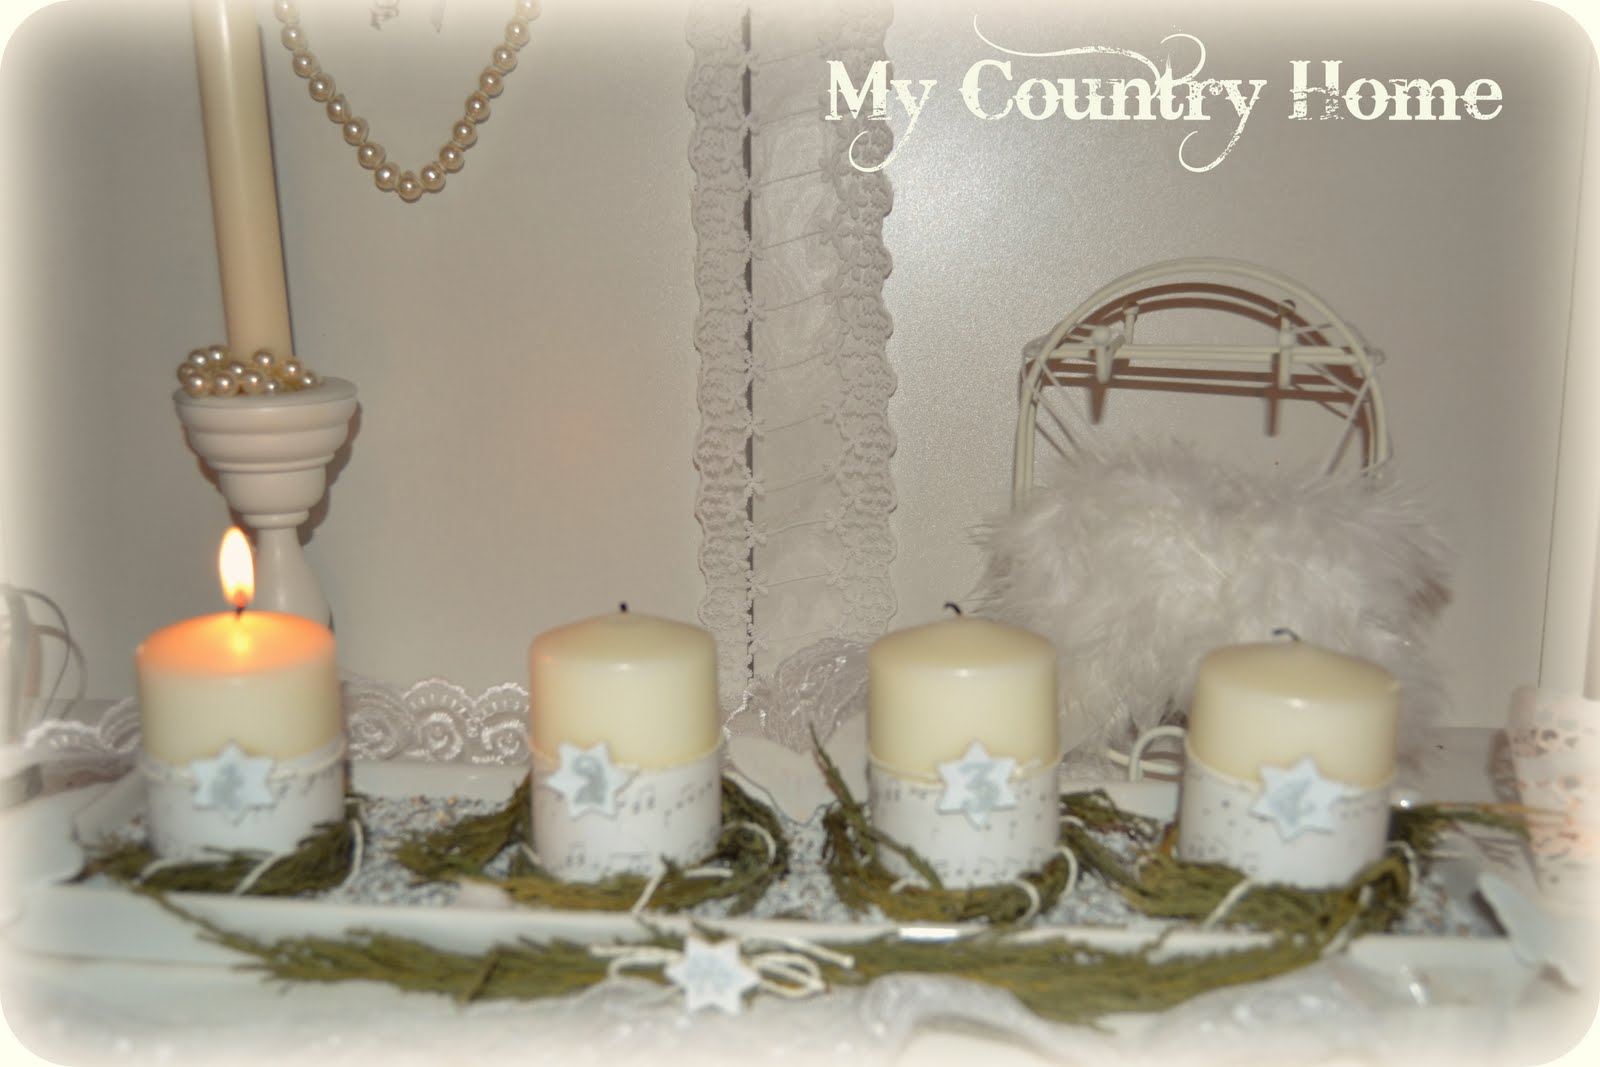 My country home candele dell 39 avvento for Candele ikea